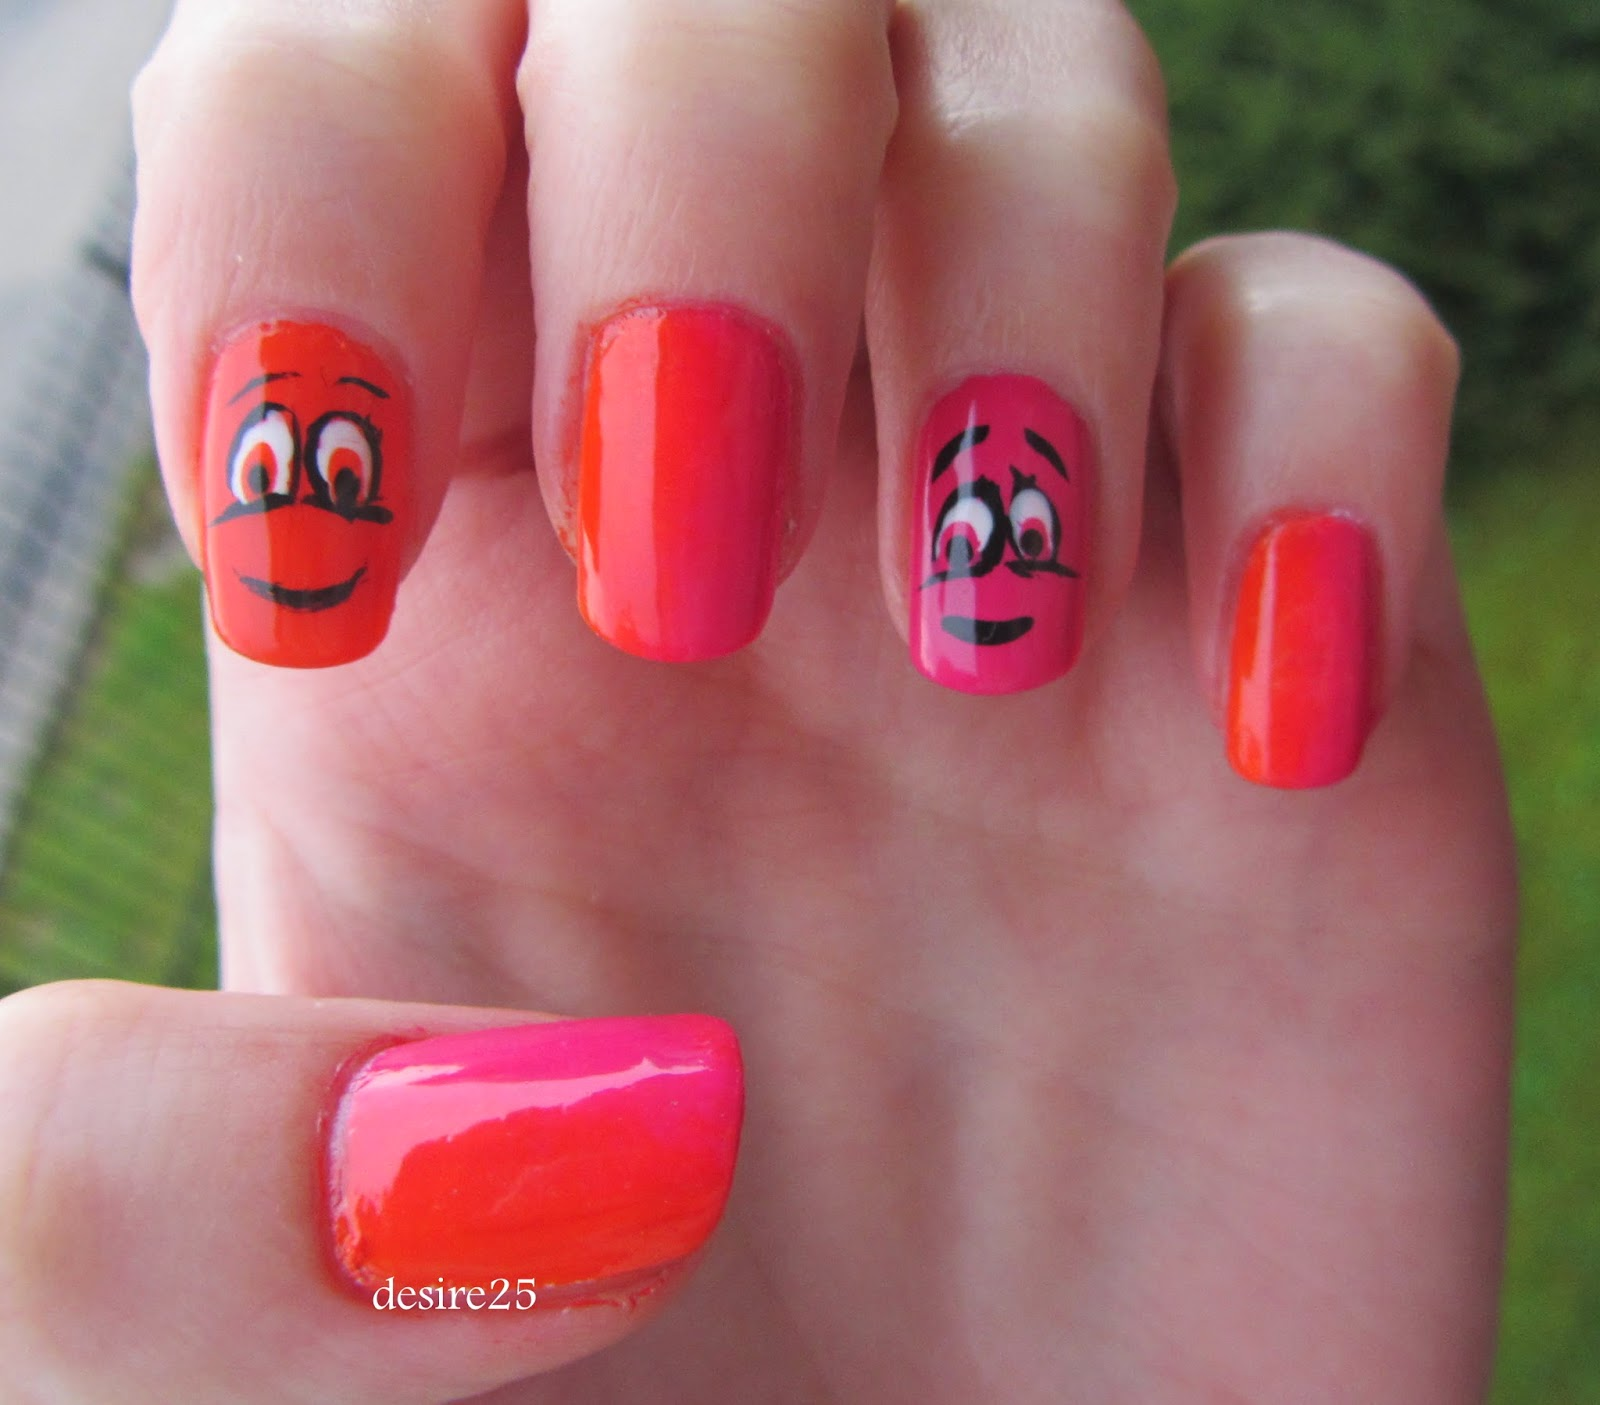 http://desire25.blogspot.com/2014/04/happy-nails.html